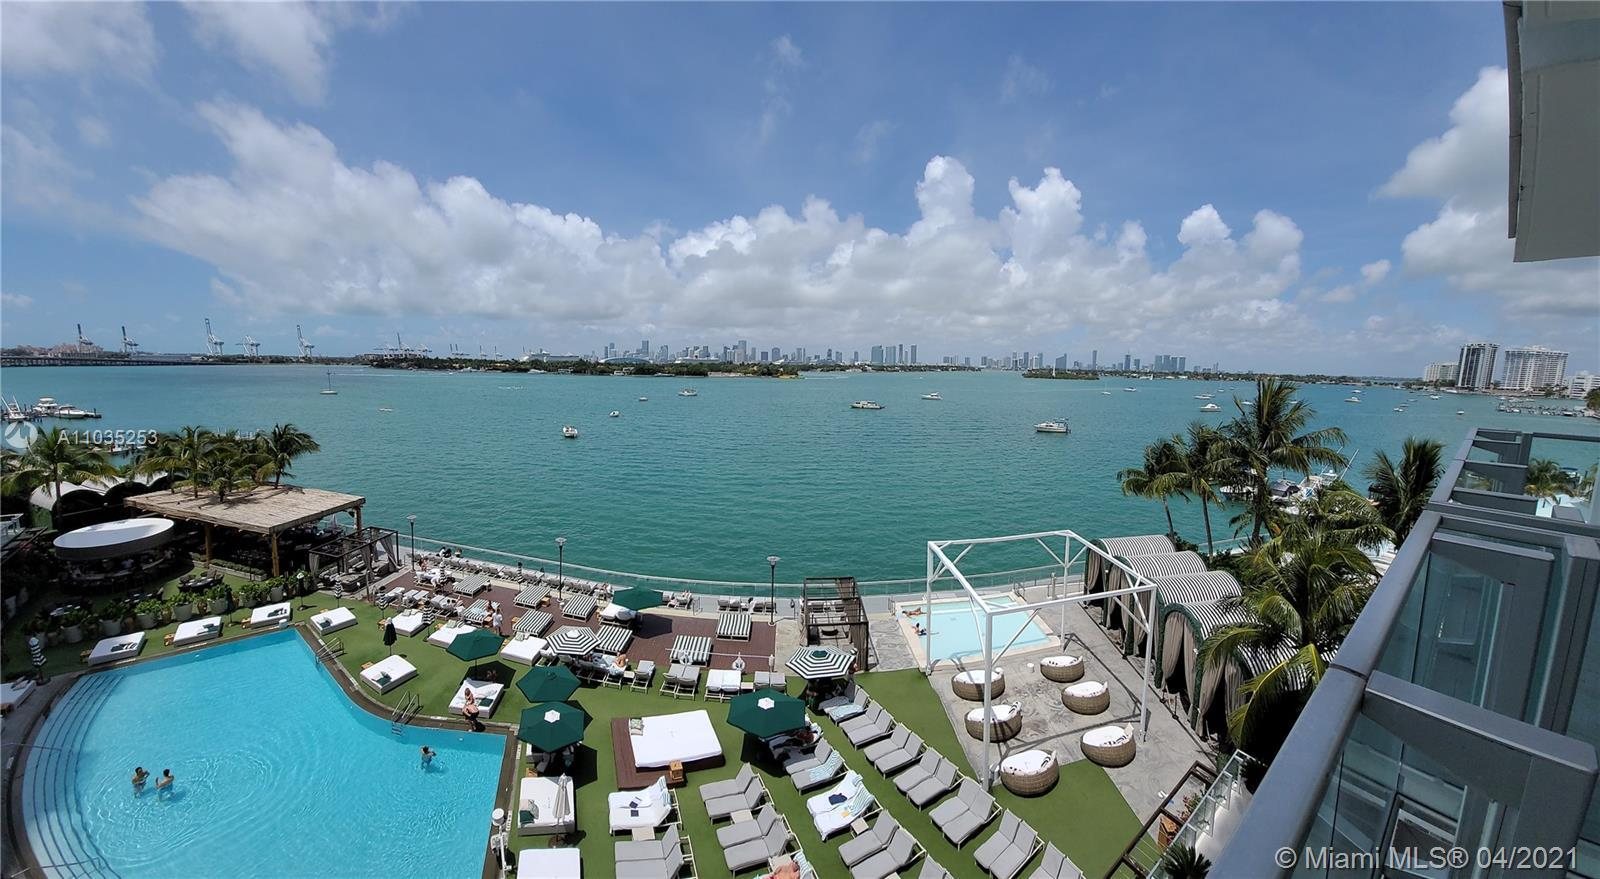 The most sought after view in South Beach...direct Bay view with Miami's growing City Skyline in the